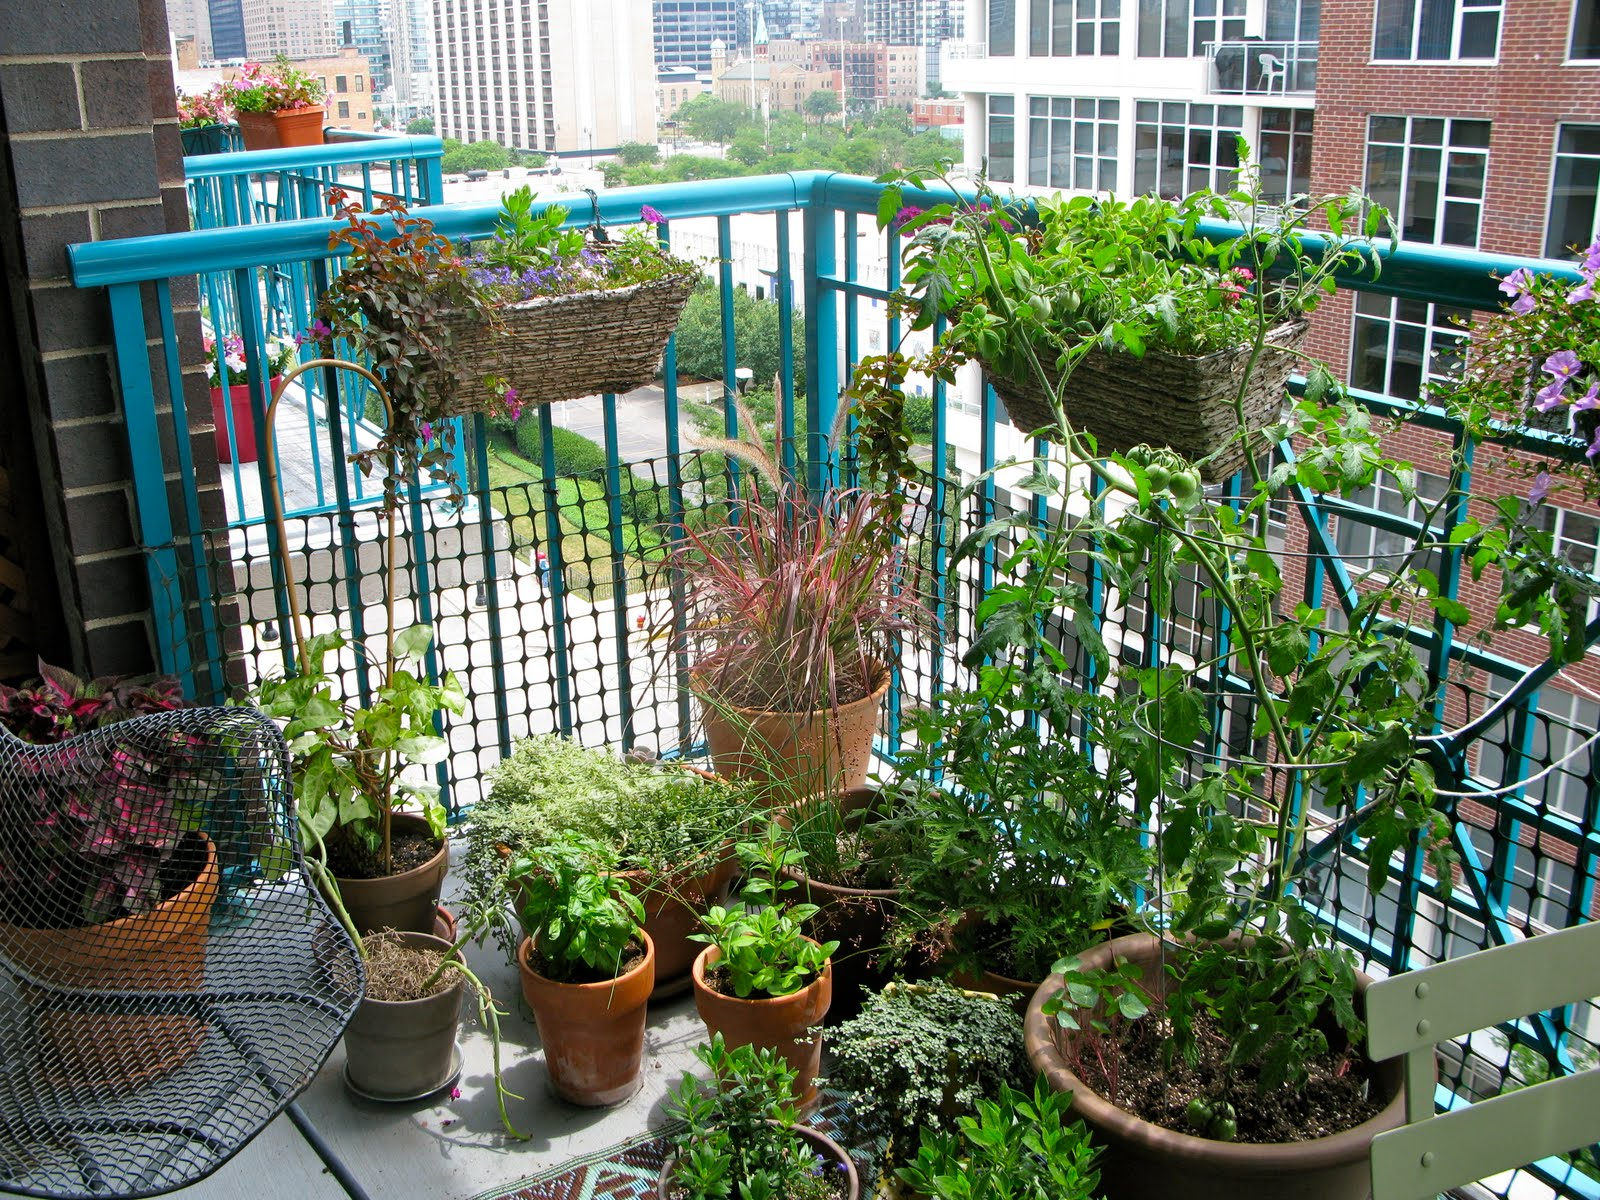 balcony garden growing herbs and food | old school garden